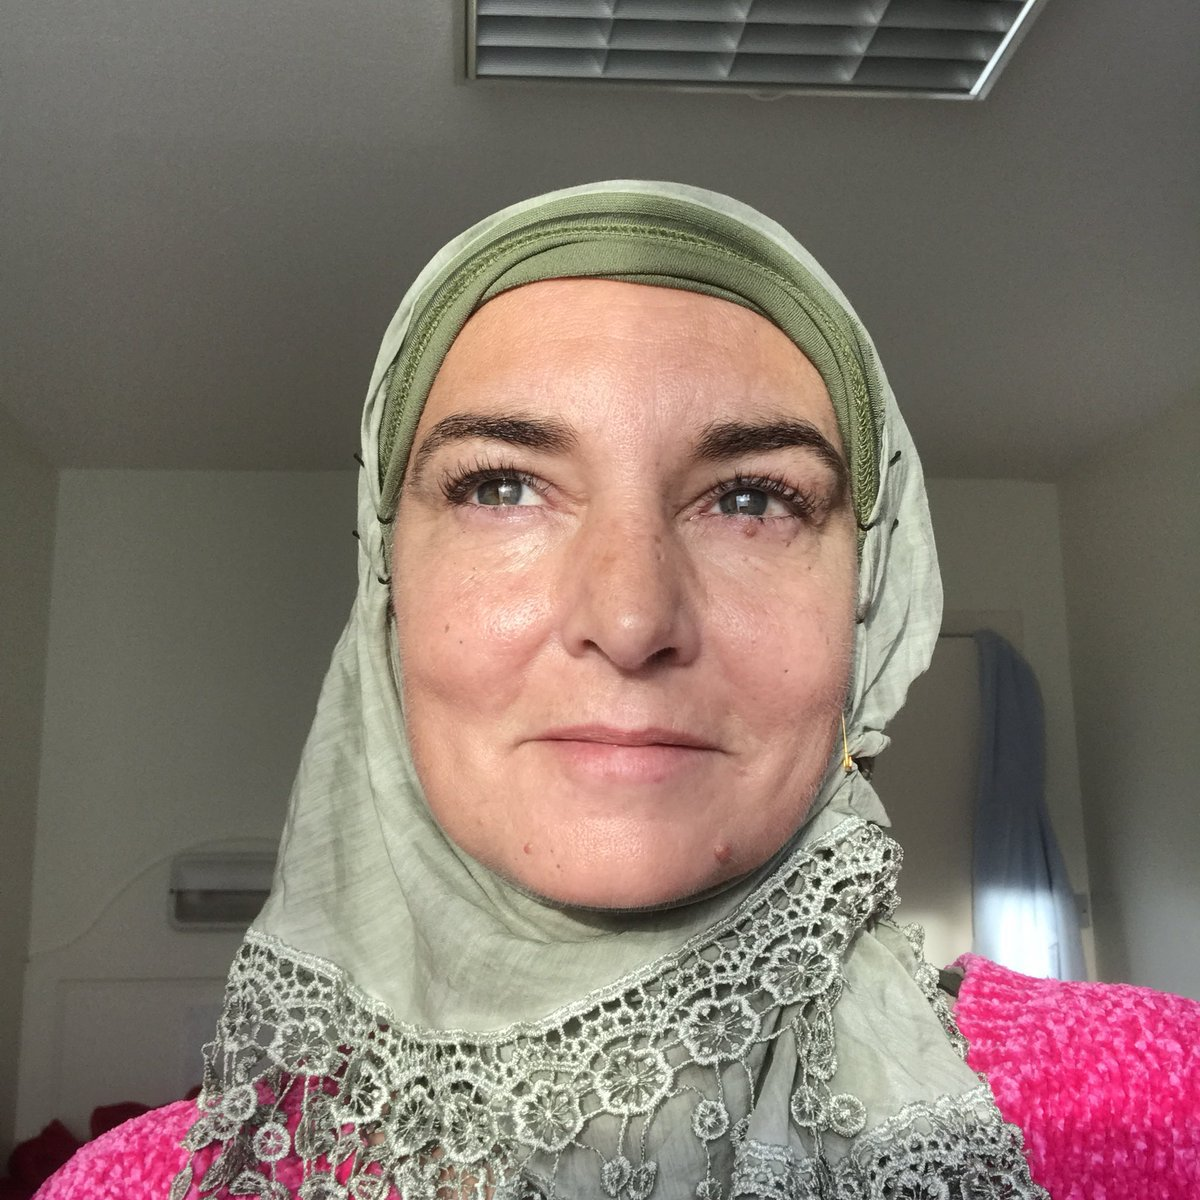 Sinead O'Connor has converted to Islam and changed her name to Shuhada' Davitt (Picture: @MagdaDavitt77)